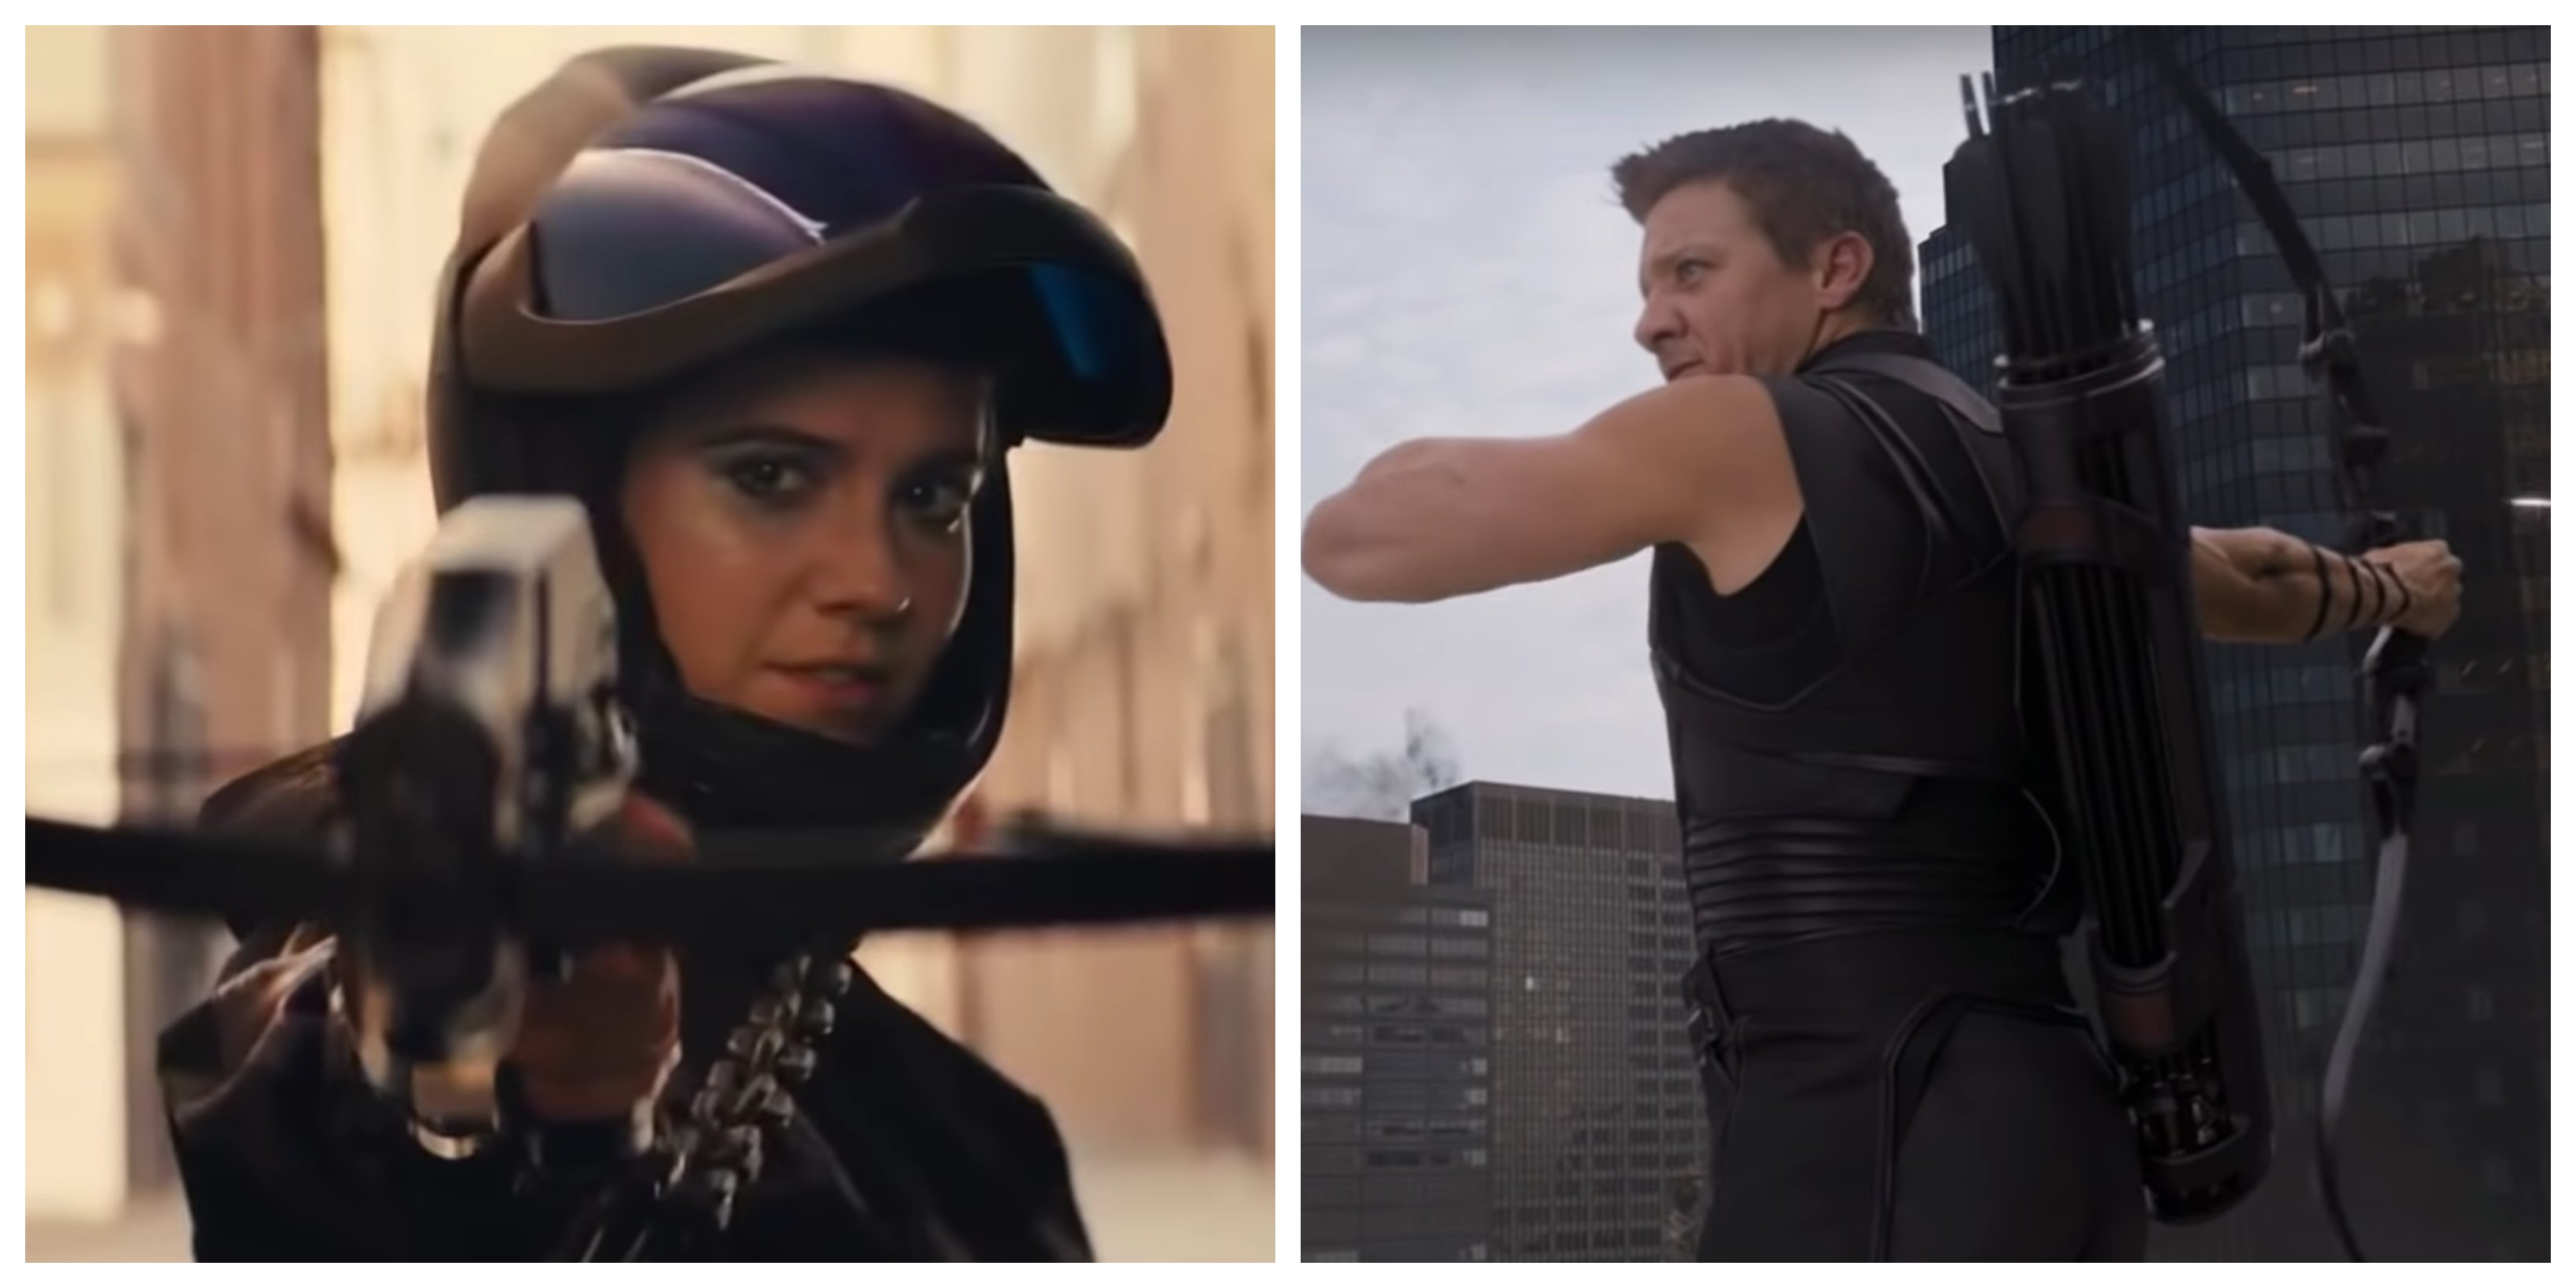 Mary Elizabeth Winstead in Birds Of Prey and Jeremy Renner in The Avengers